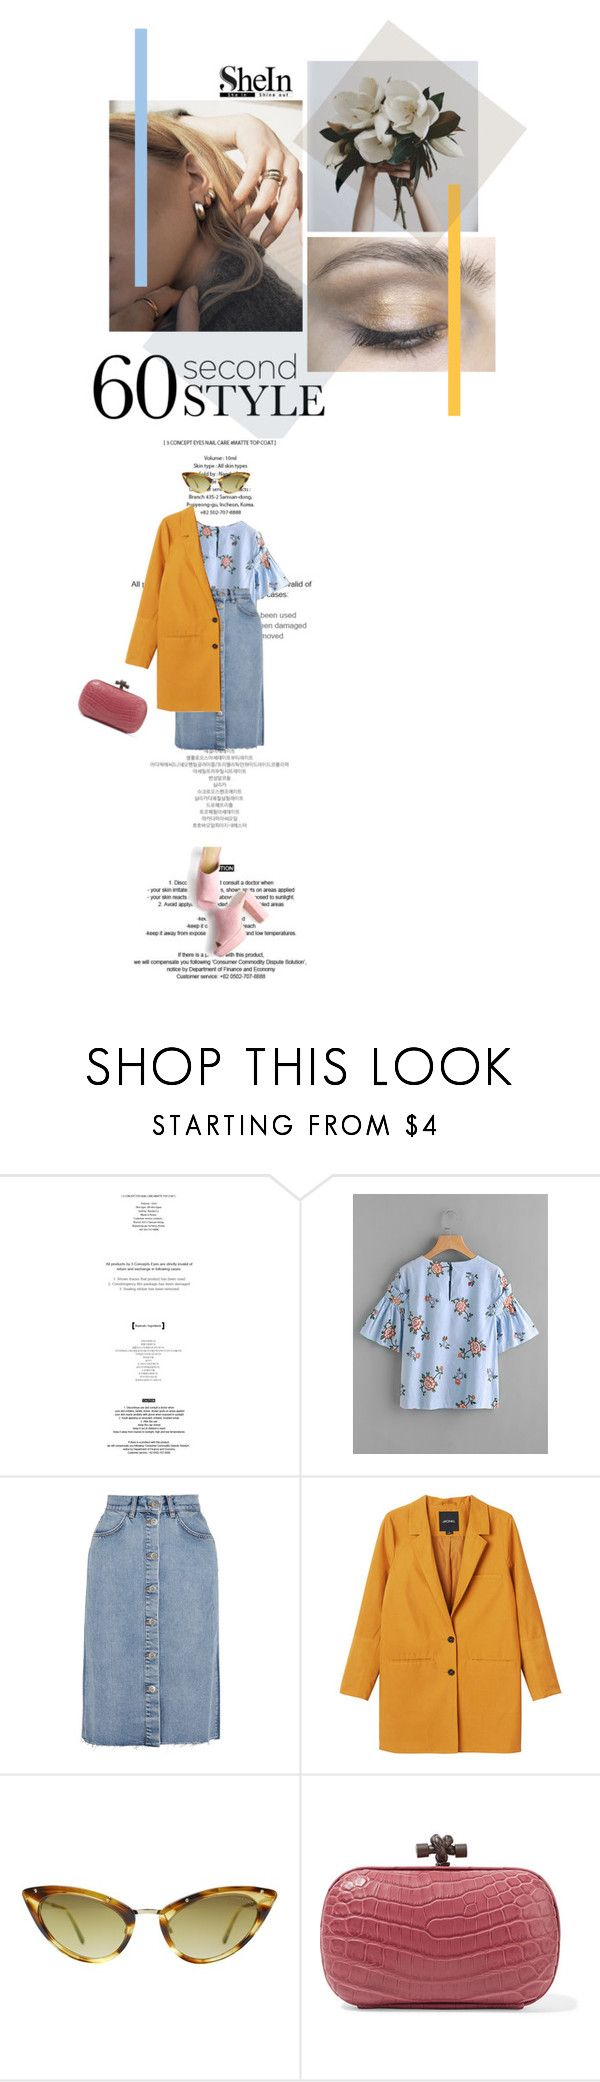 """""""Sans titre #188"""" by shayna-8 ❤ liked on Polyvore featuring GET LOST, StyleNanda, M.i.h Jeans, Monki, Tom Ford and Bottega Veneta"""